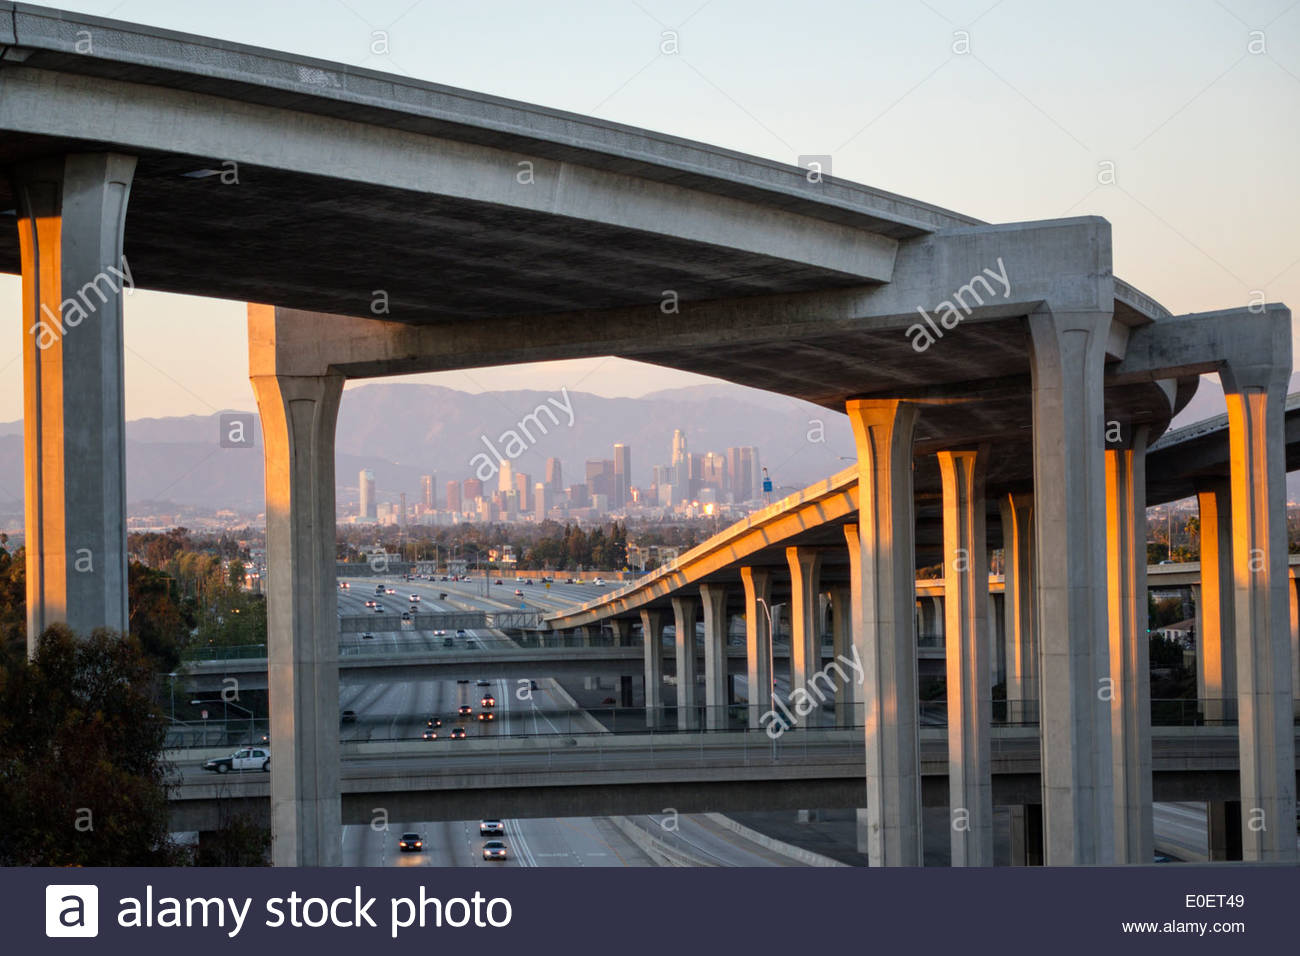 Los Angeles California CA L.A. Interstate 110 105 I-110 I-105 Harbor Freeway highway overpass freeway motorway interchange junction elevated roadway c - Stock Image